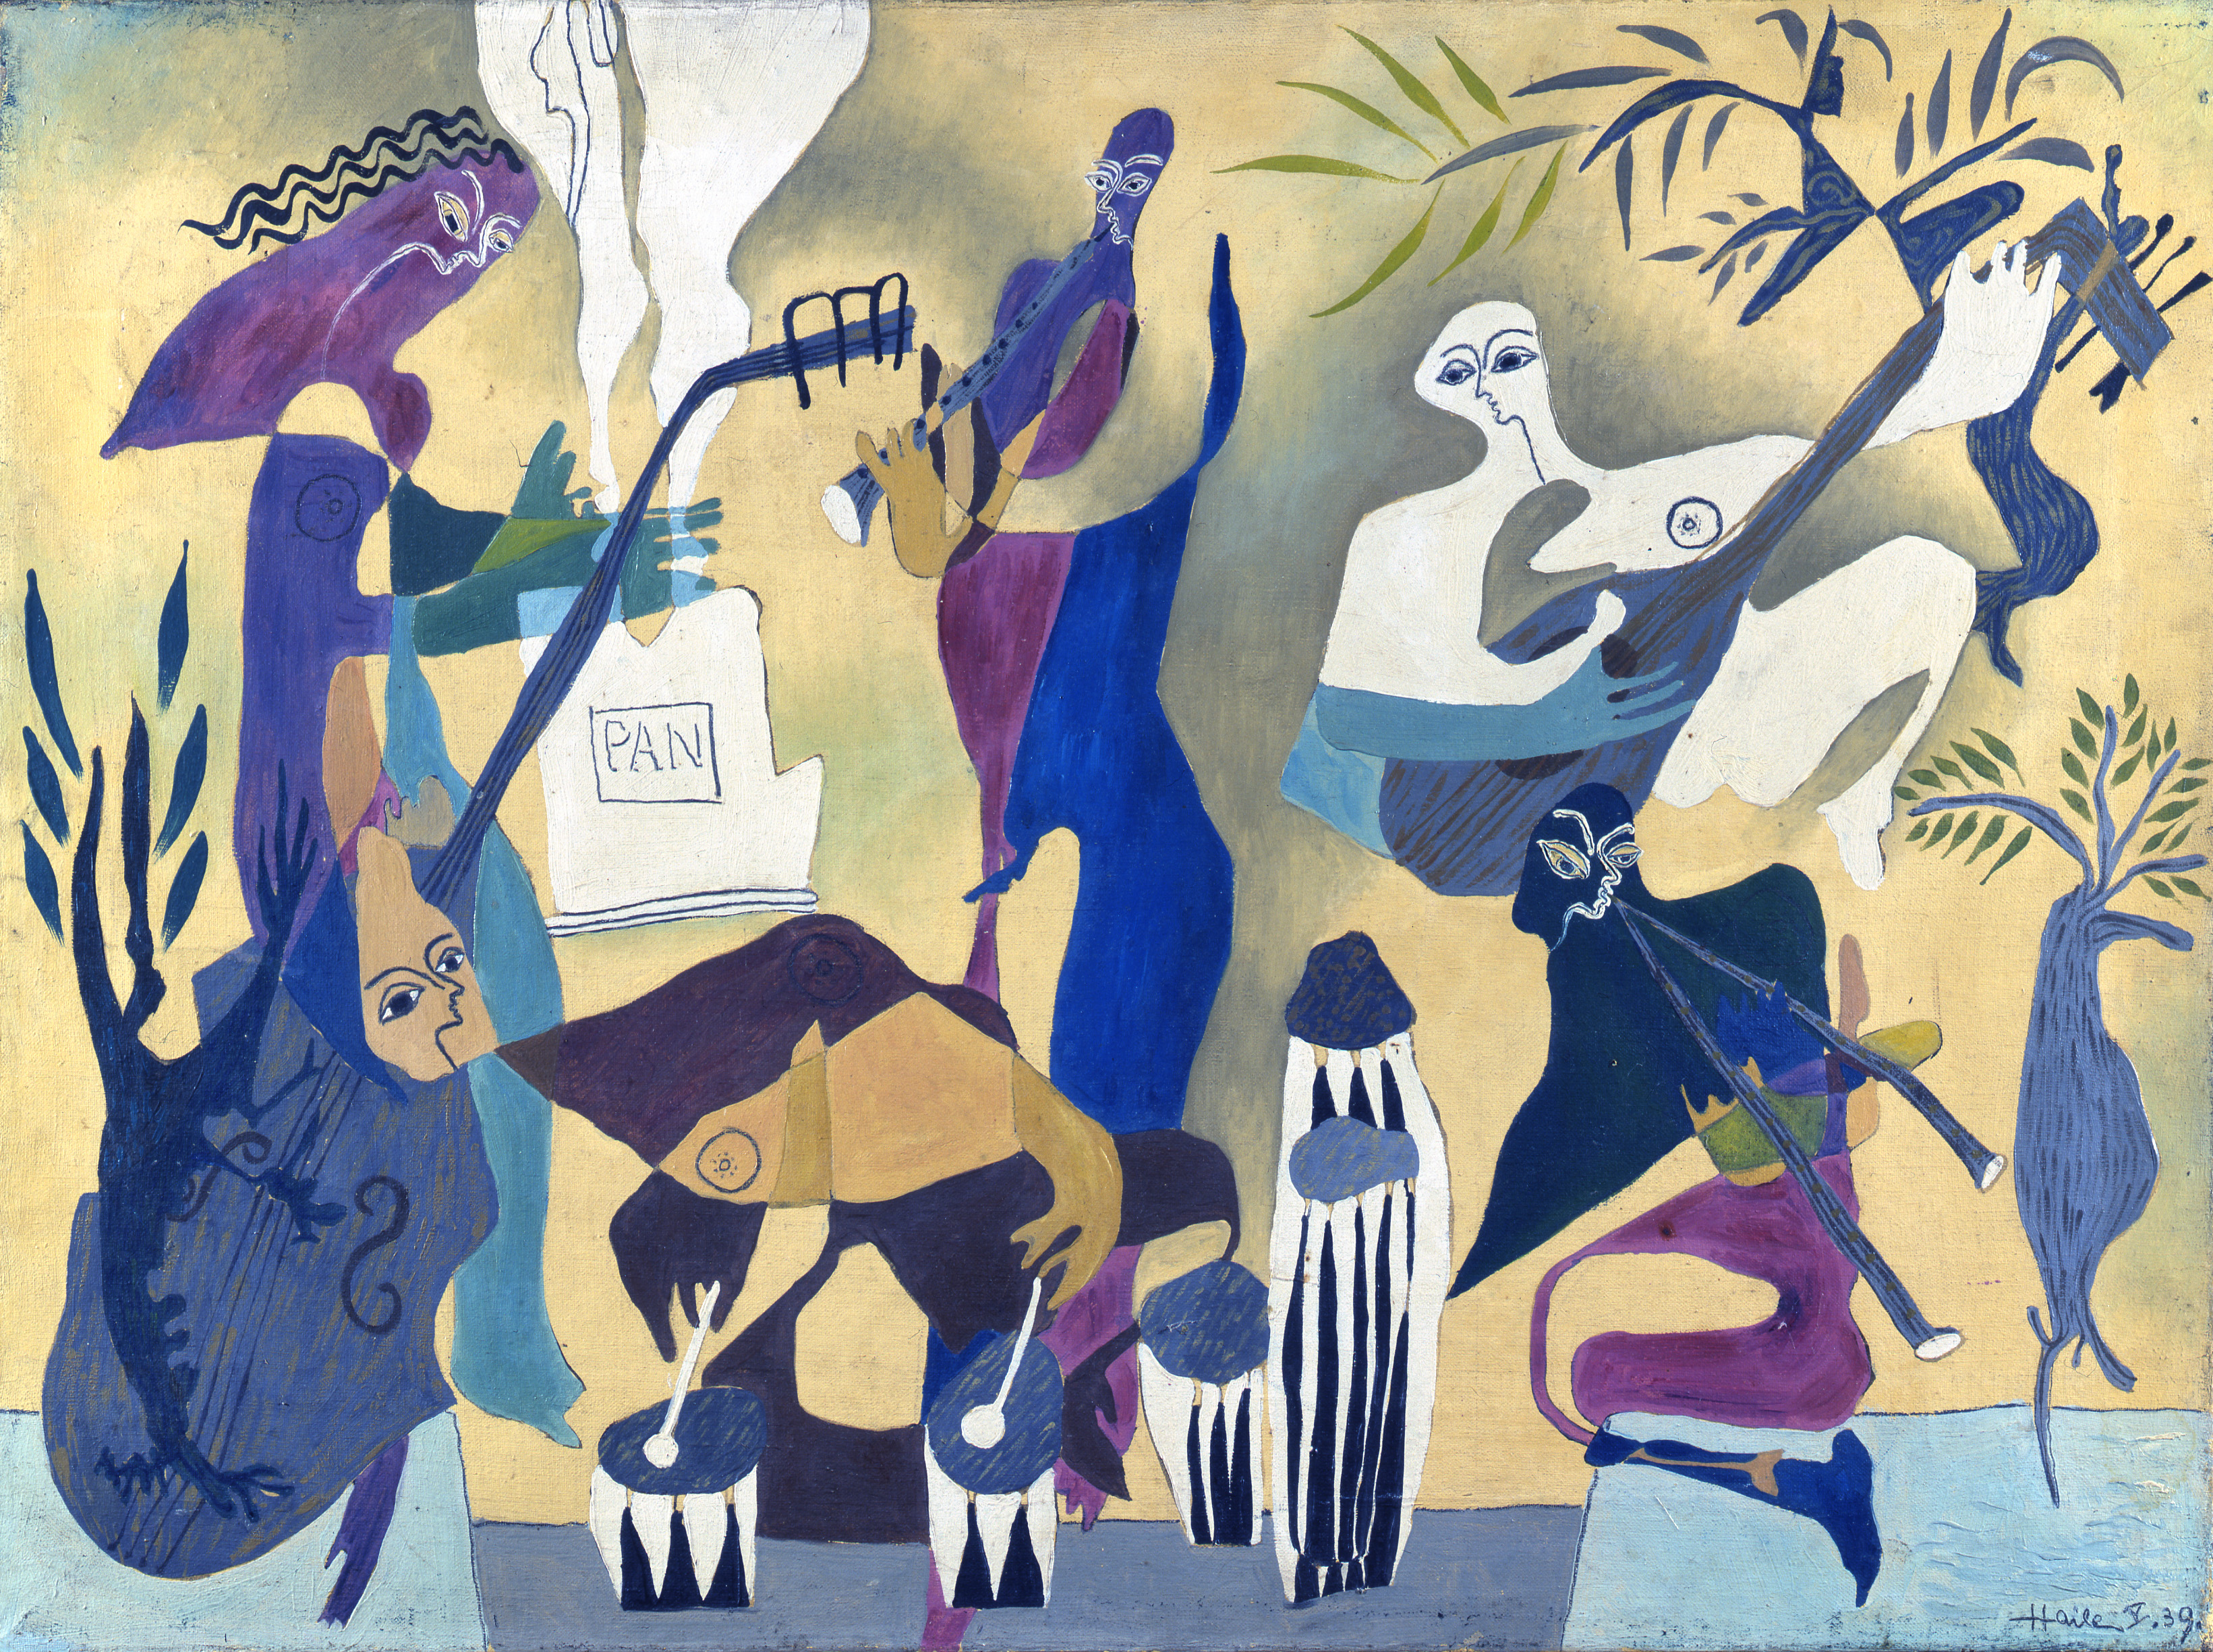 music musicians african trust york abstract artist lowry exhibition classic ls previous samuel haile paintings painting warhol andy museums 1939